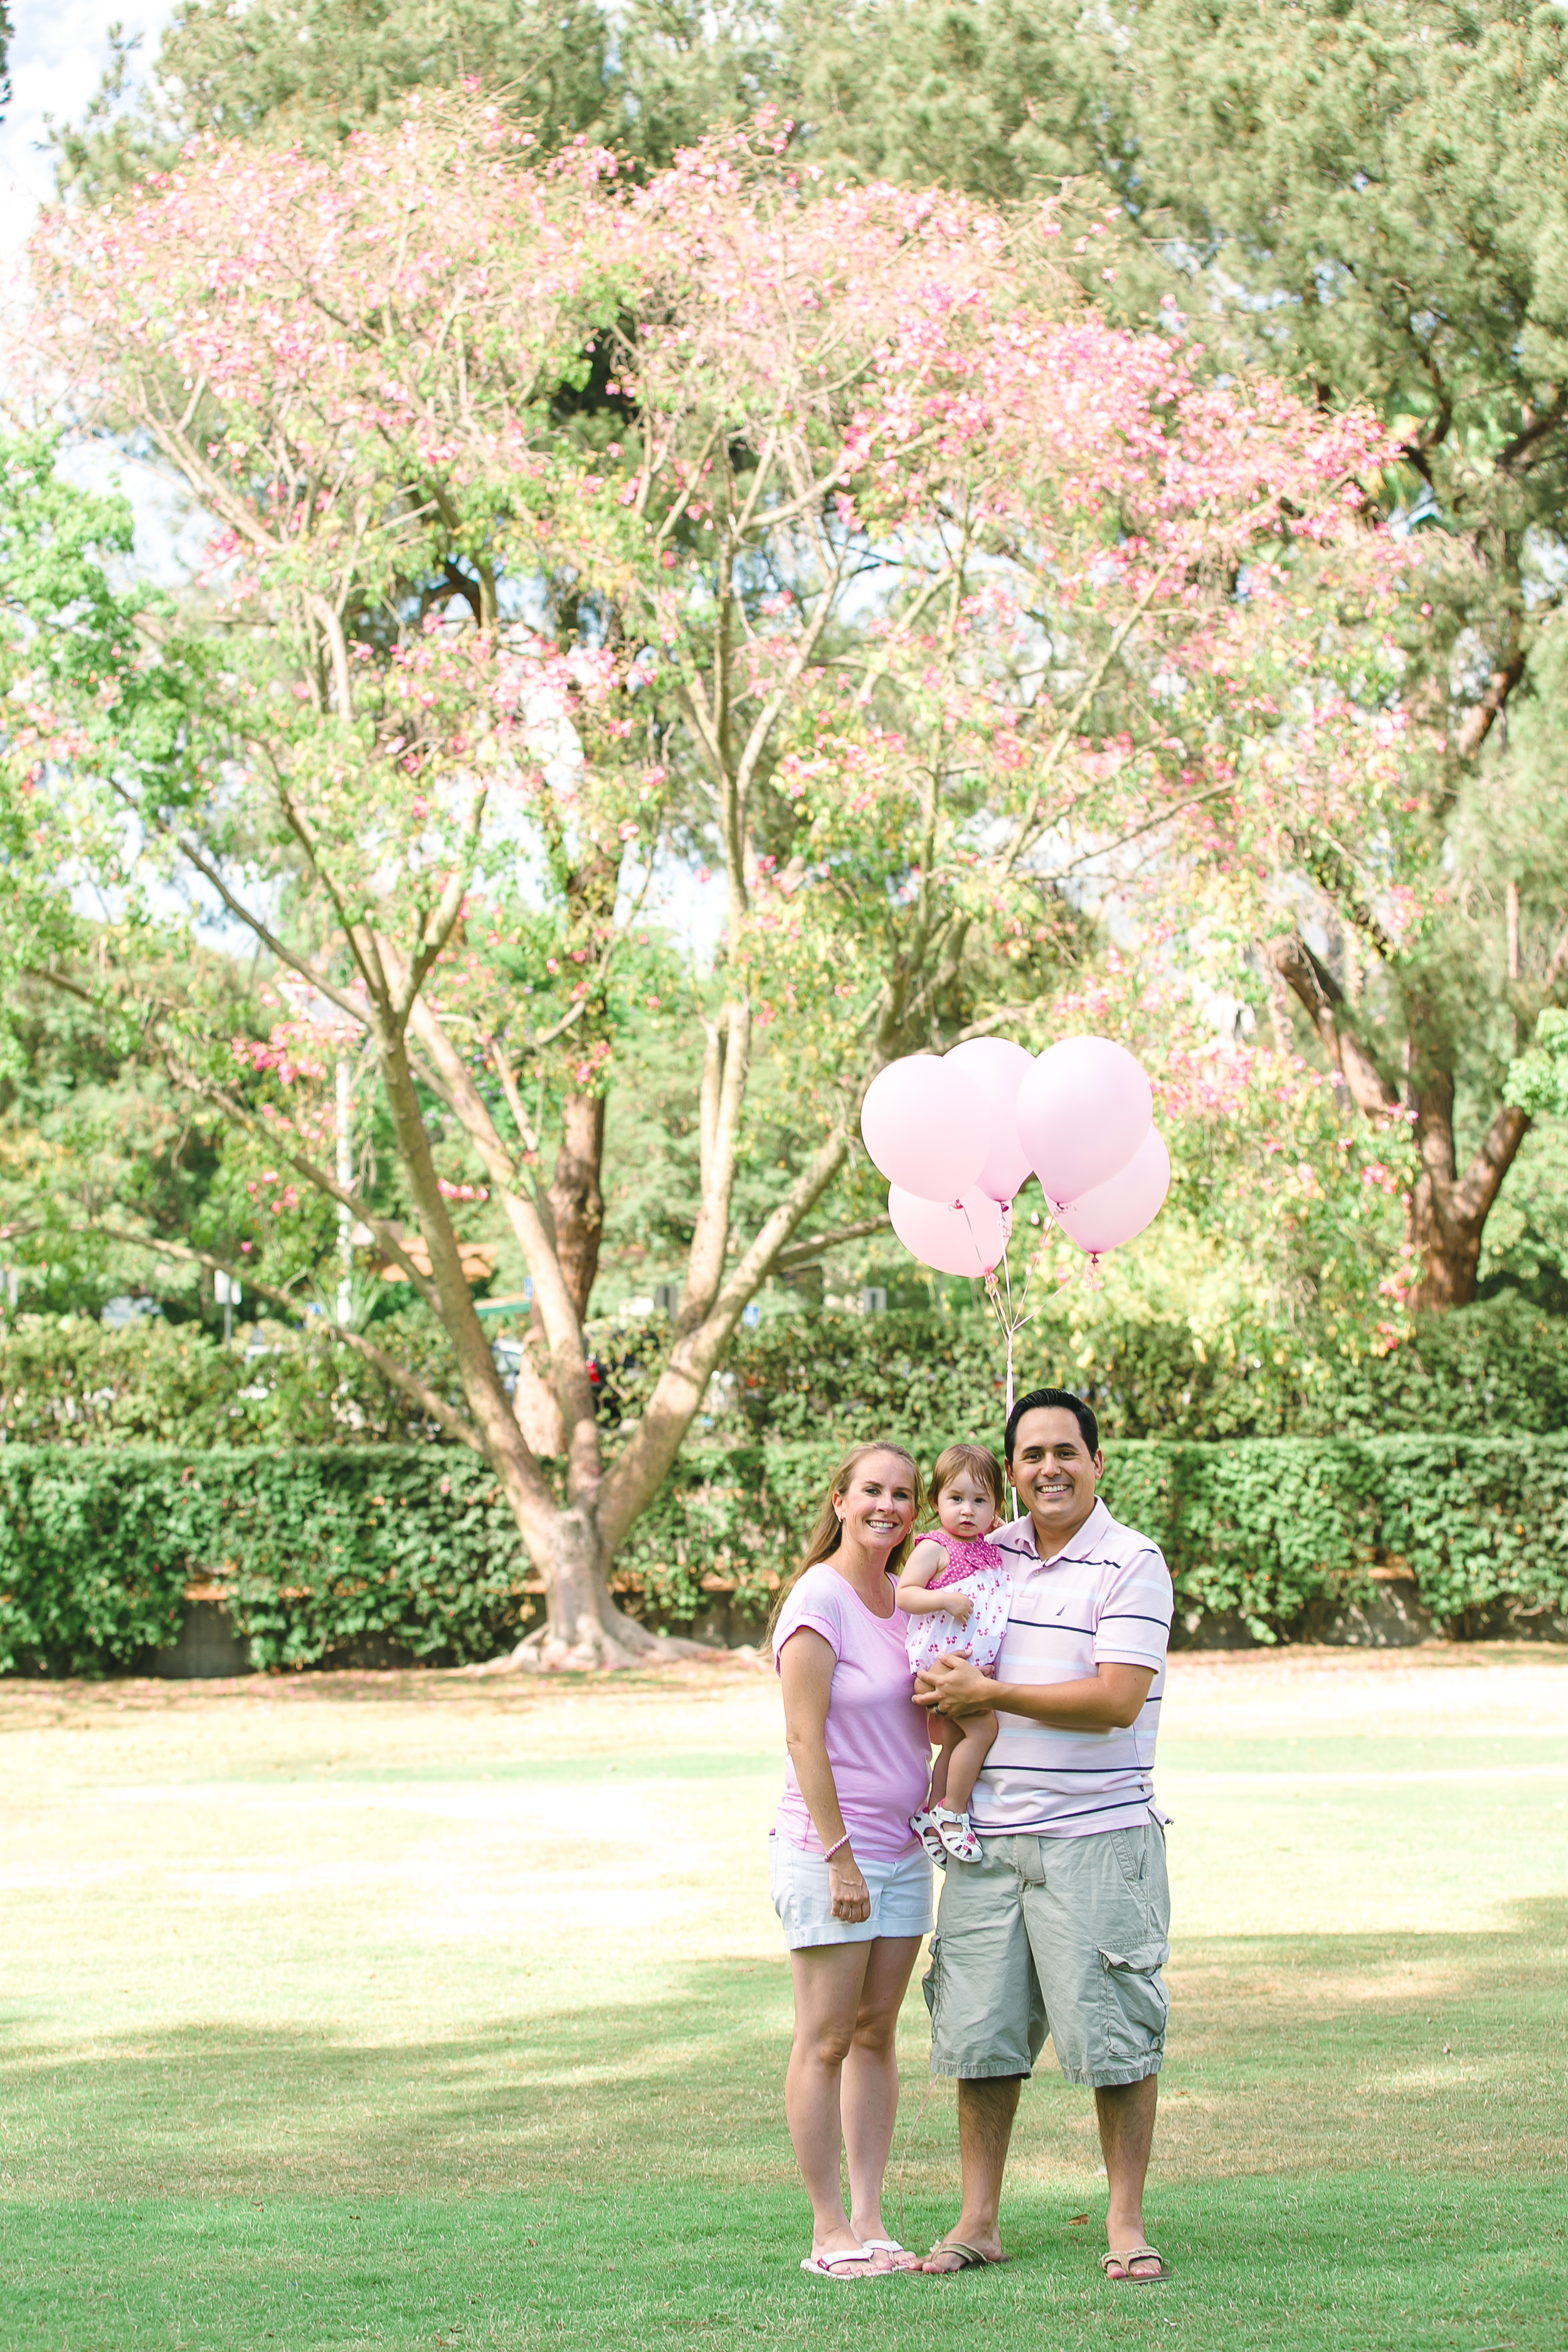 Los Angeles Family Photos, Arcadia Portrait Photography, Arboretum images, little girl with pink balloons, First Birthday, San Gabriel Lifestyle Photographer, Gina Holt Photography, Love, Celebrate, Amazing Family and Baby Pictures